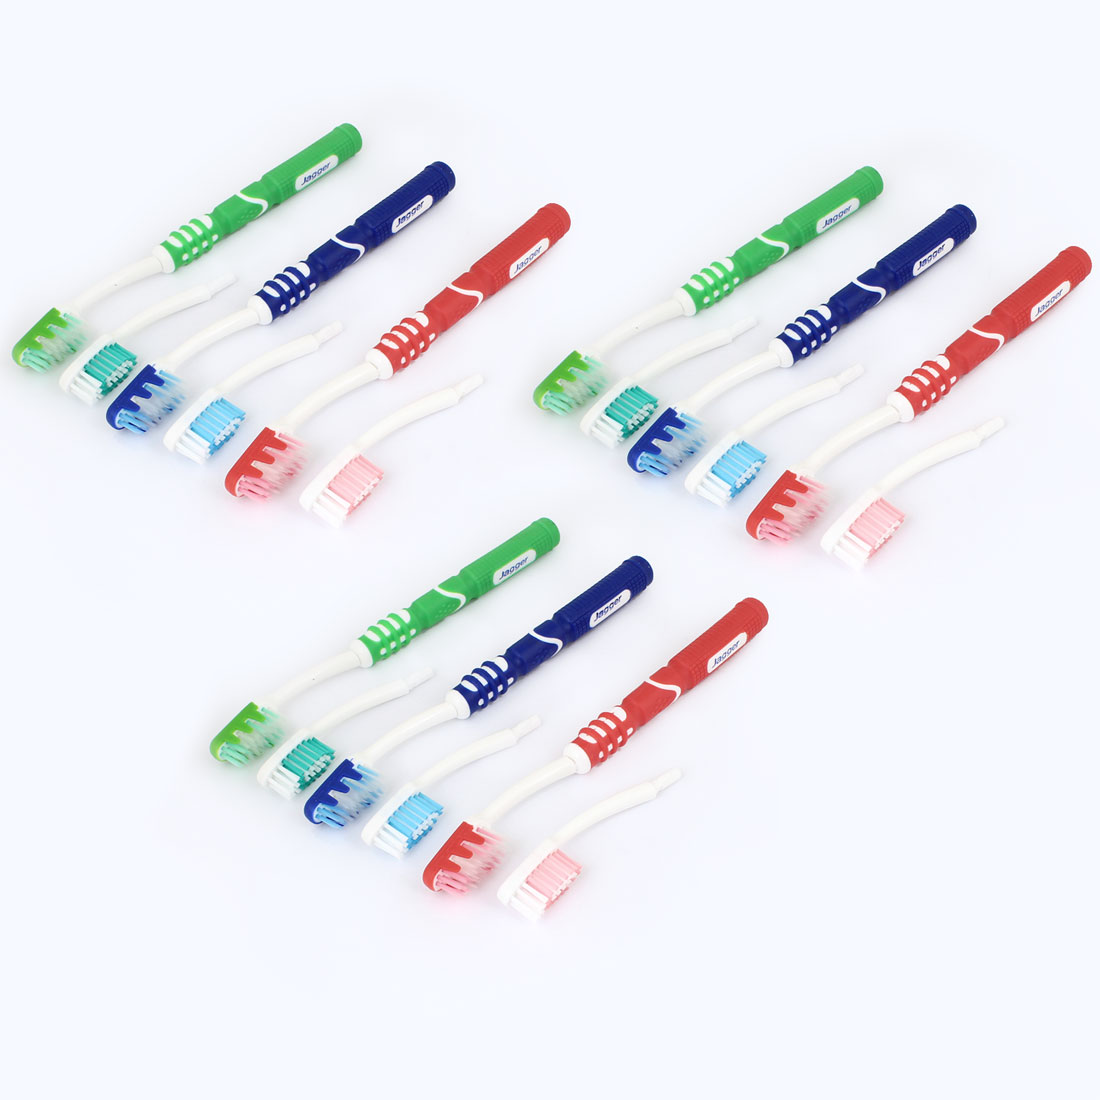 12pcs Assorted Color Soft Bristle Toothbrush w Replacement Brush Head